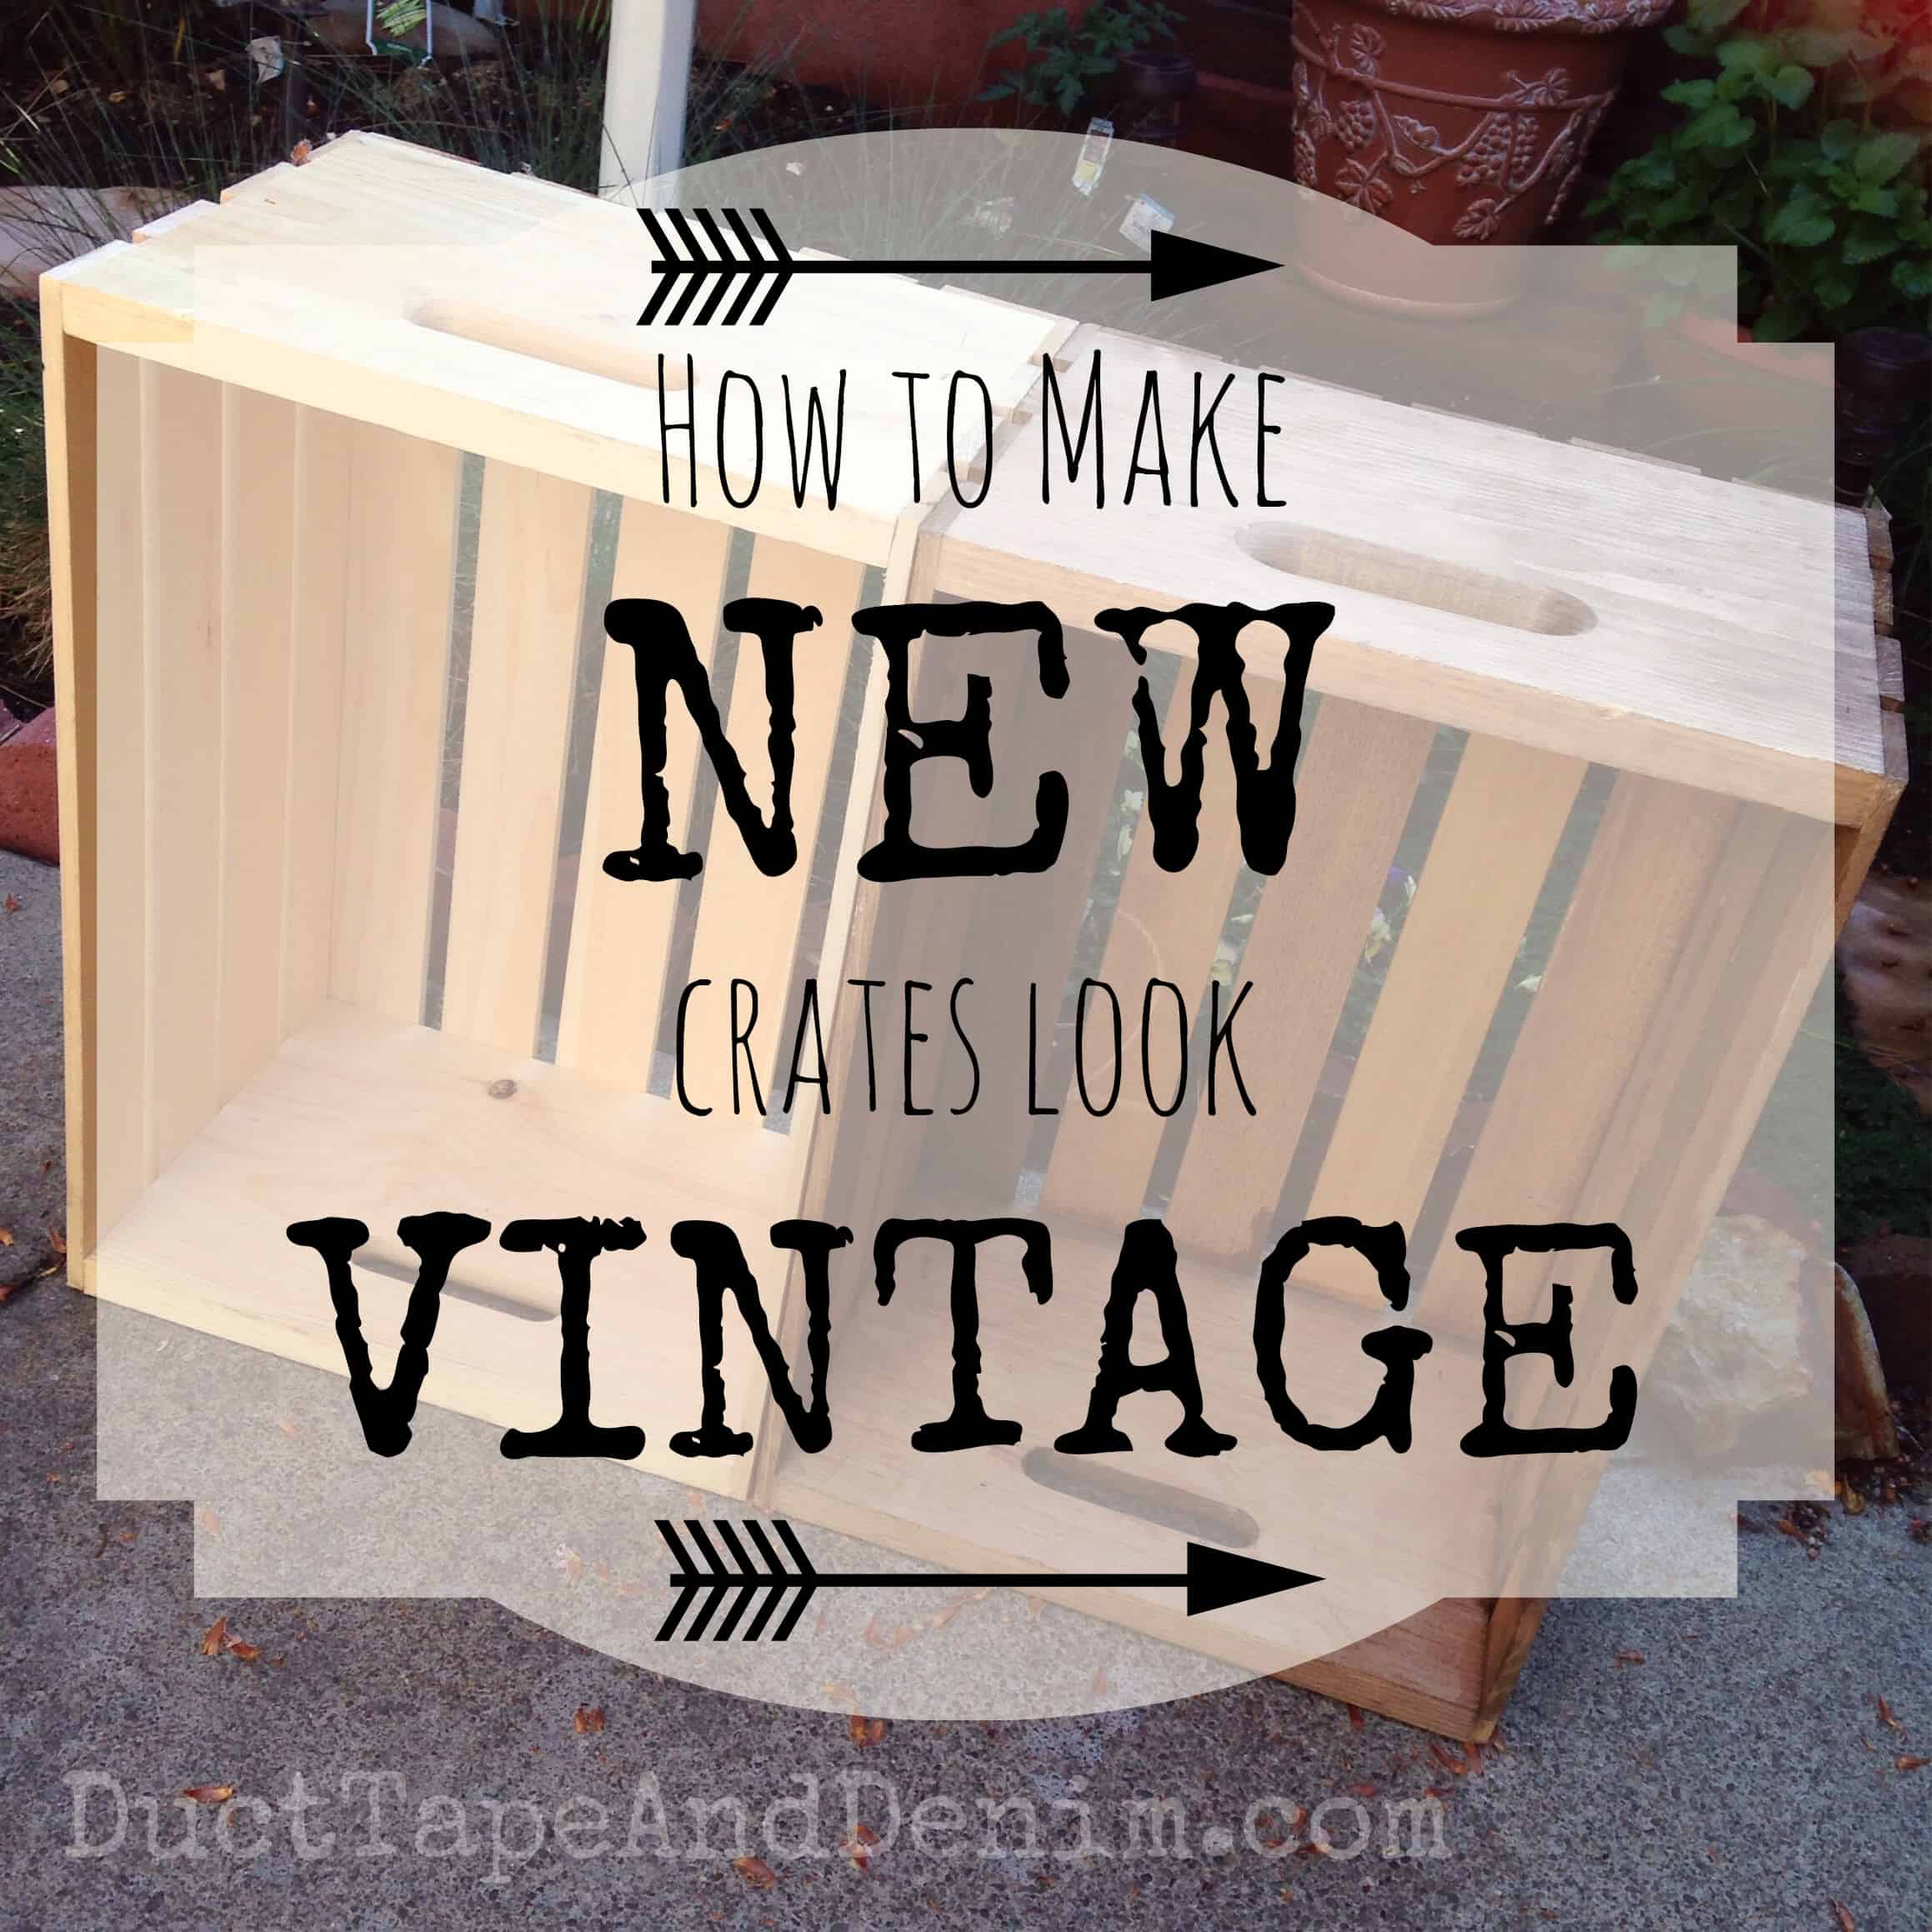 make vintage crates images galleries